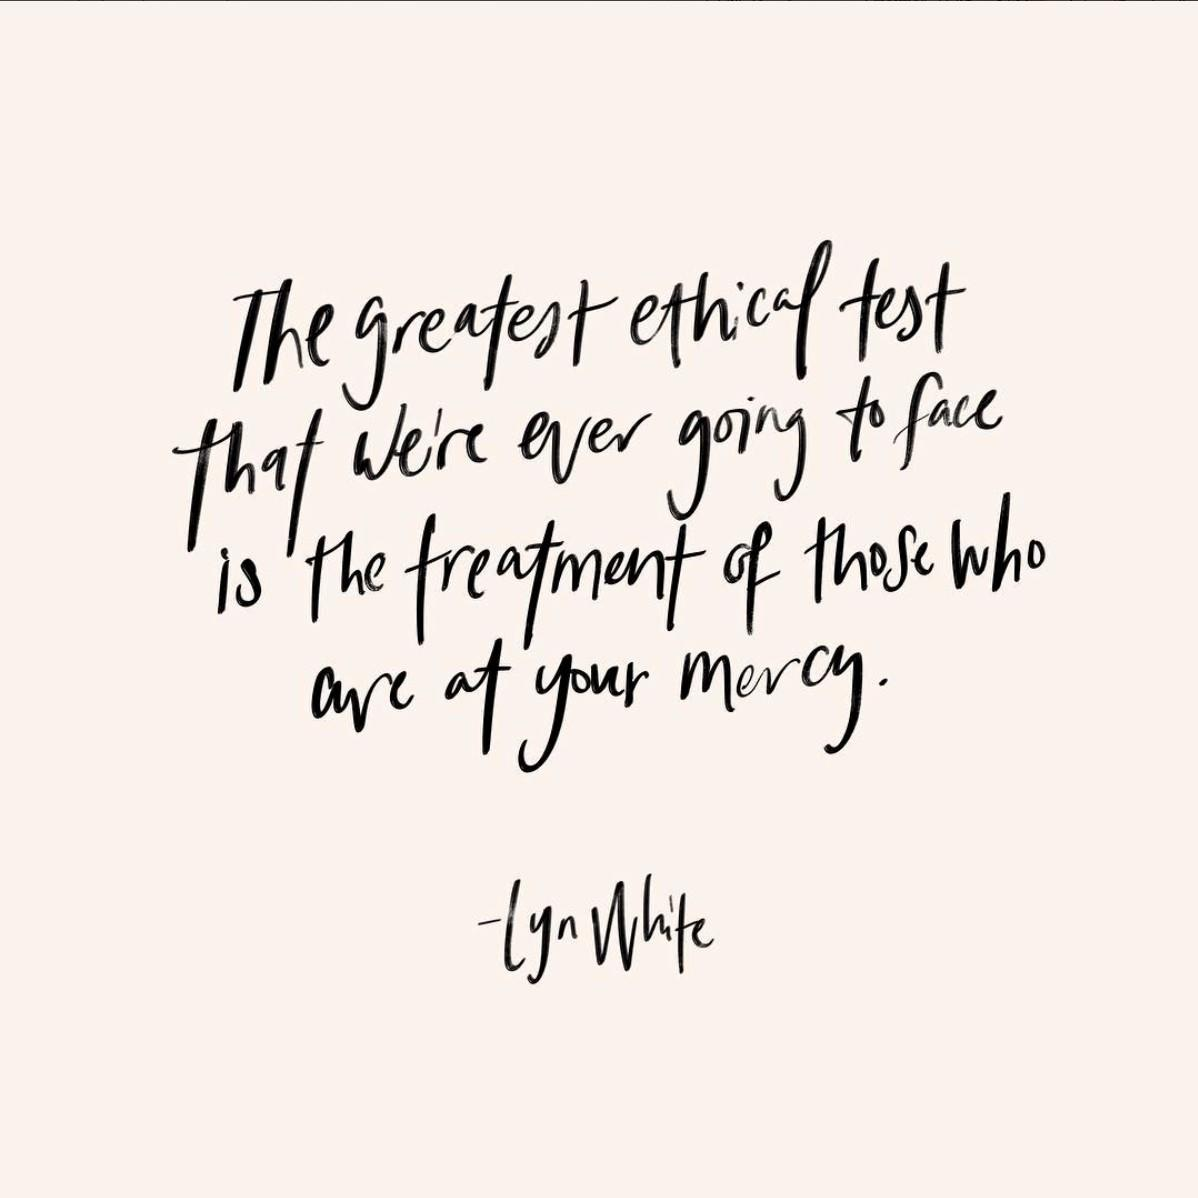 lyn white quote